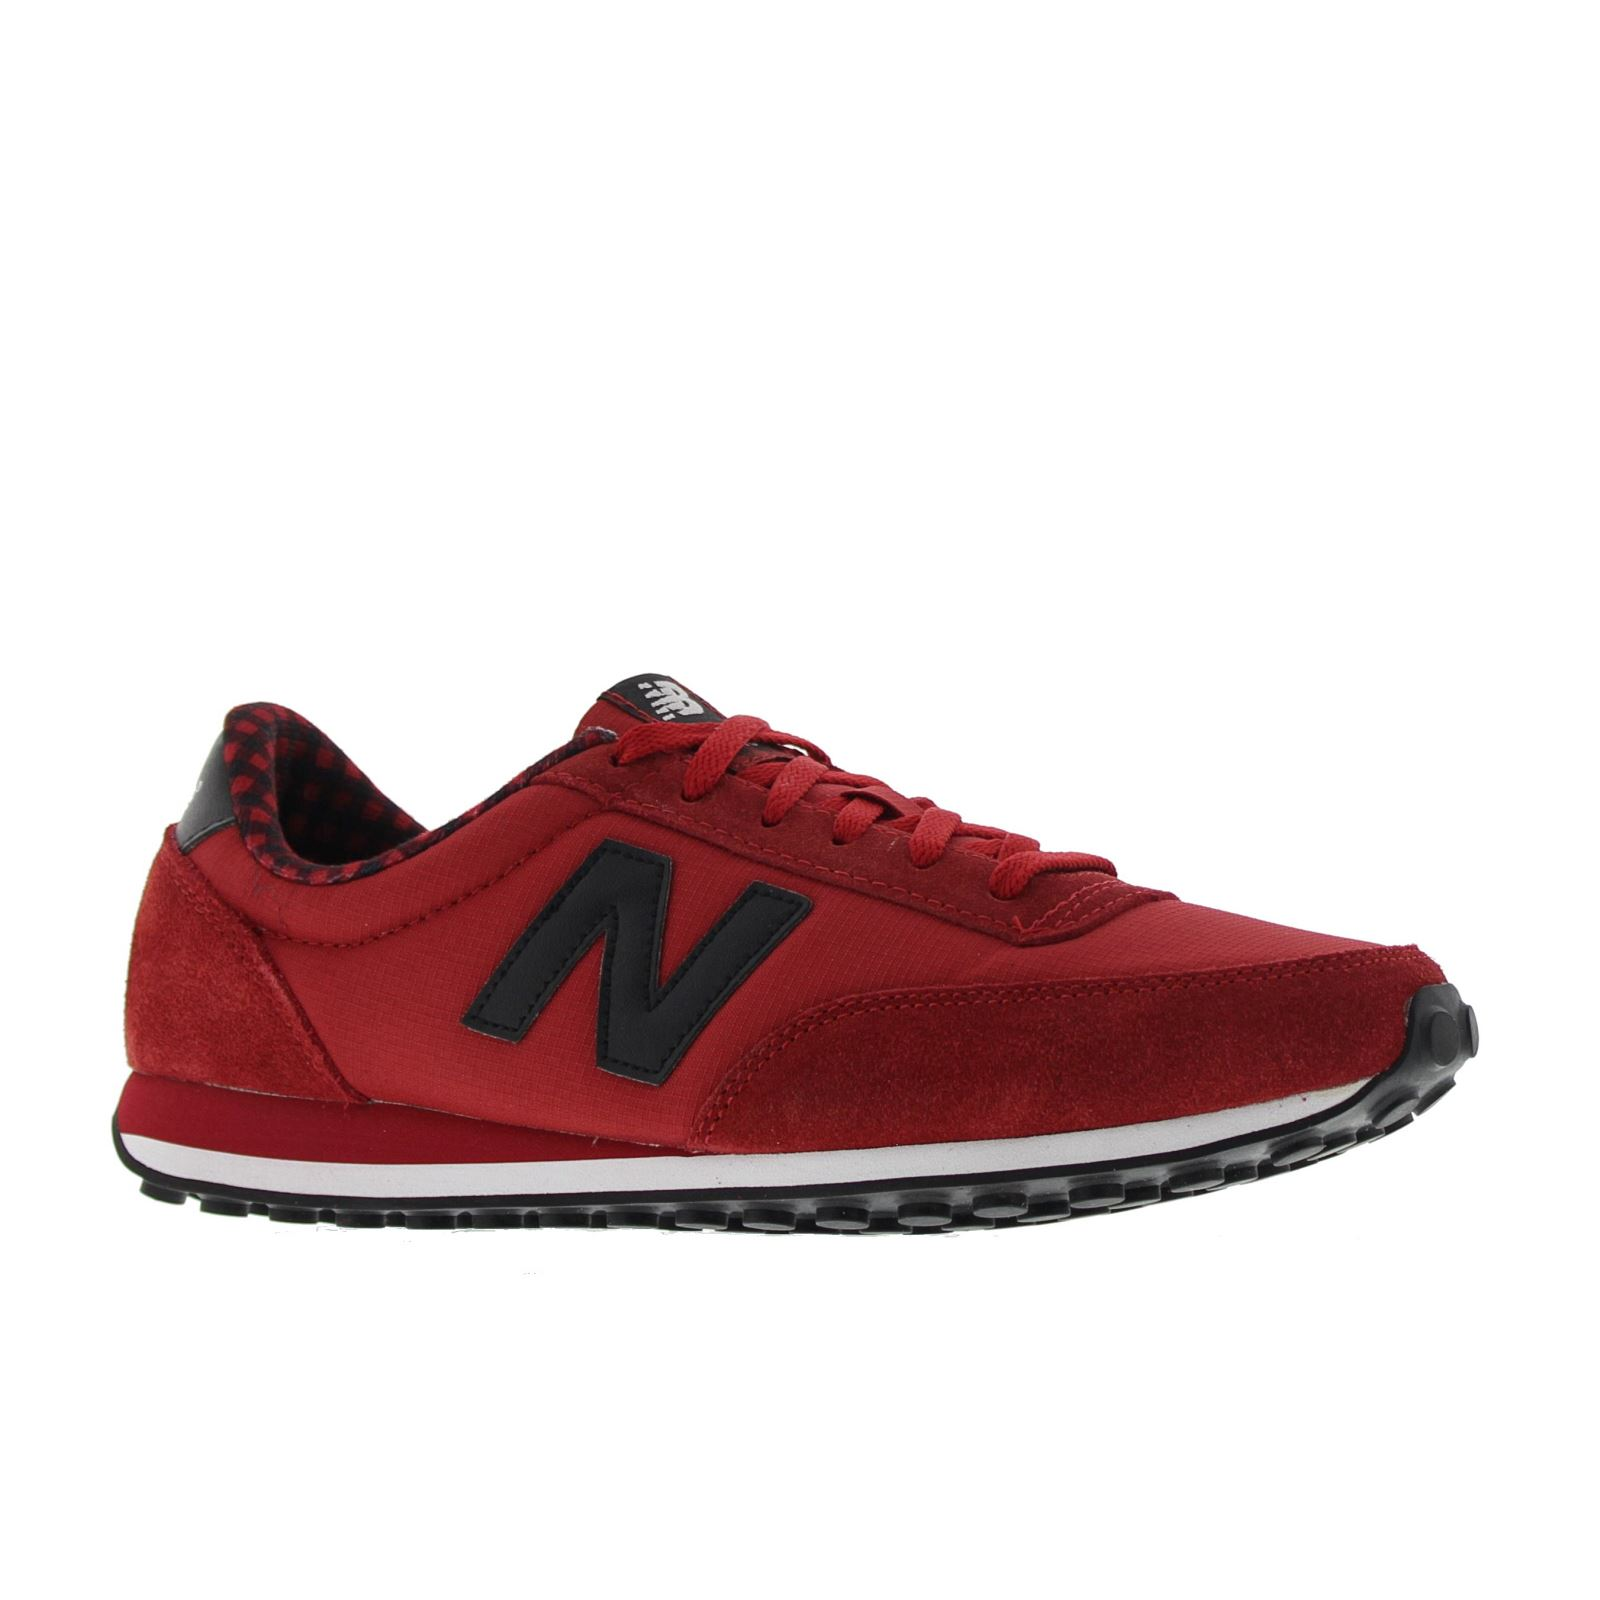 new balance 410 buffalo plaid classics traditionnels red black womens trainers. Black Bedroom Furniture Sets. Home Design Ideas